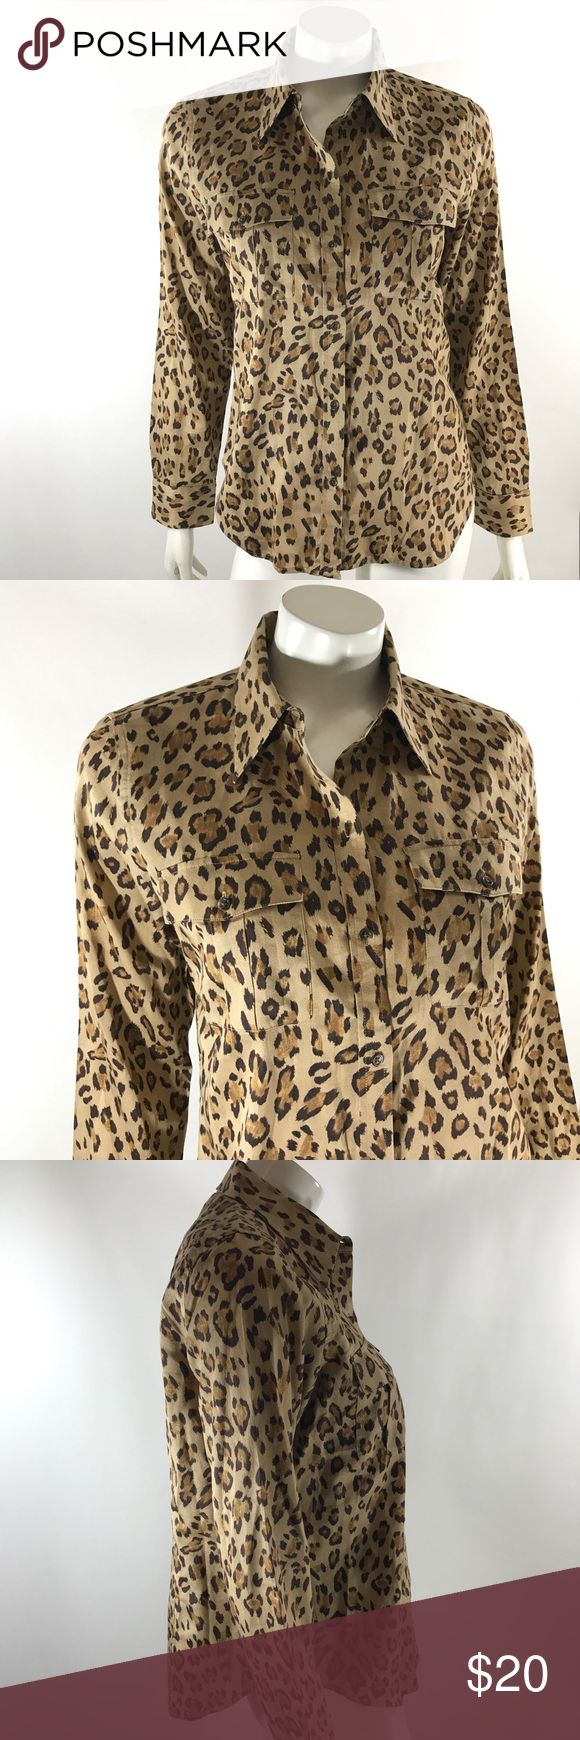 Ralph Lauren Top Size Large Brown Animal Print Lauren Ralph Lauren Womens Top Size Large Brown Animal Print Button Down Shirt. Measurements: (in inches) Underarm to underarm: 20.5 Length: 25.5  Good, gently used condition Lauren Ralph Lauren Tops Button Down Shirts